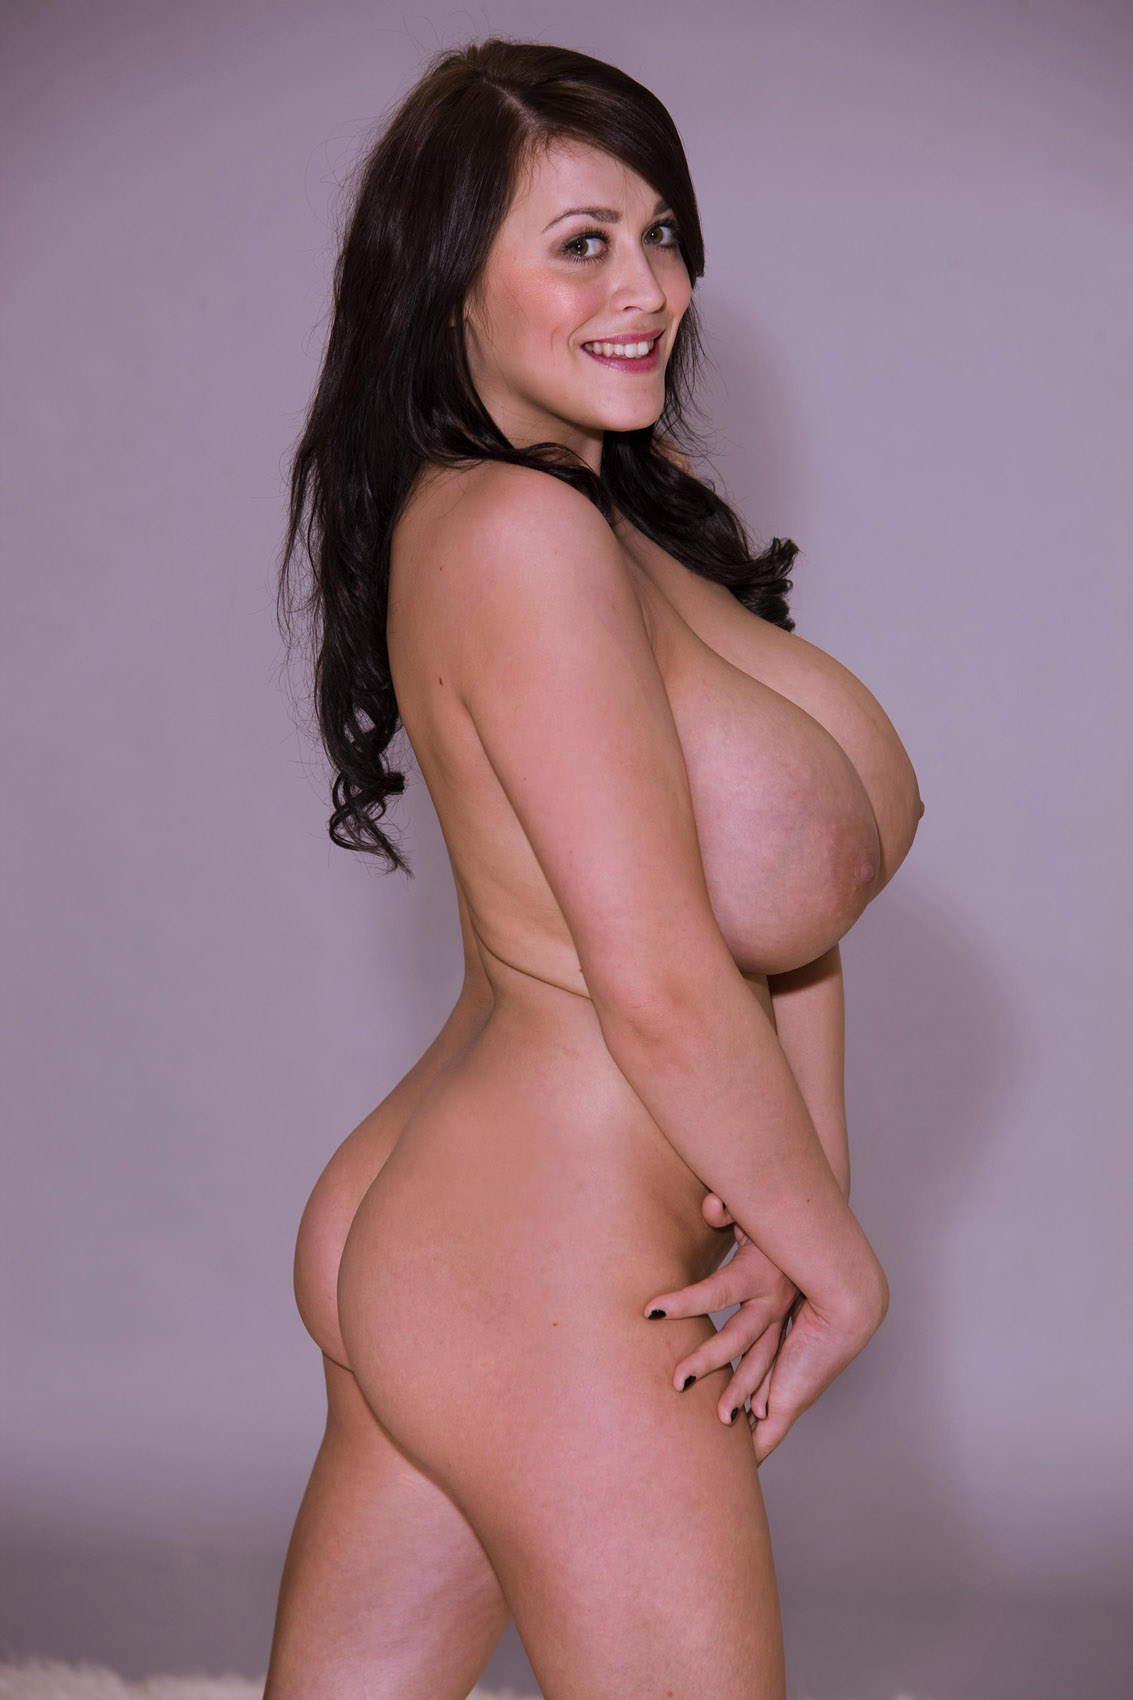 leanne crow fully nude